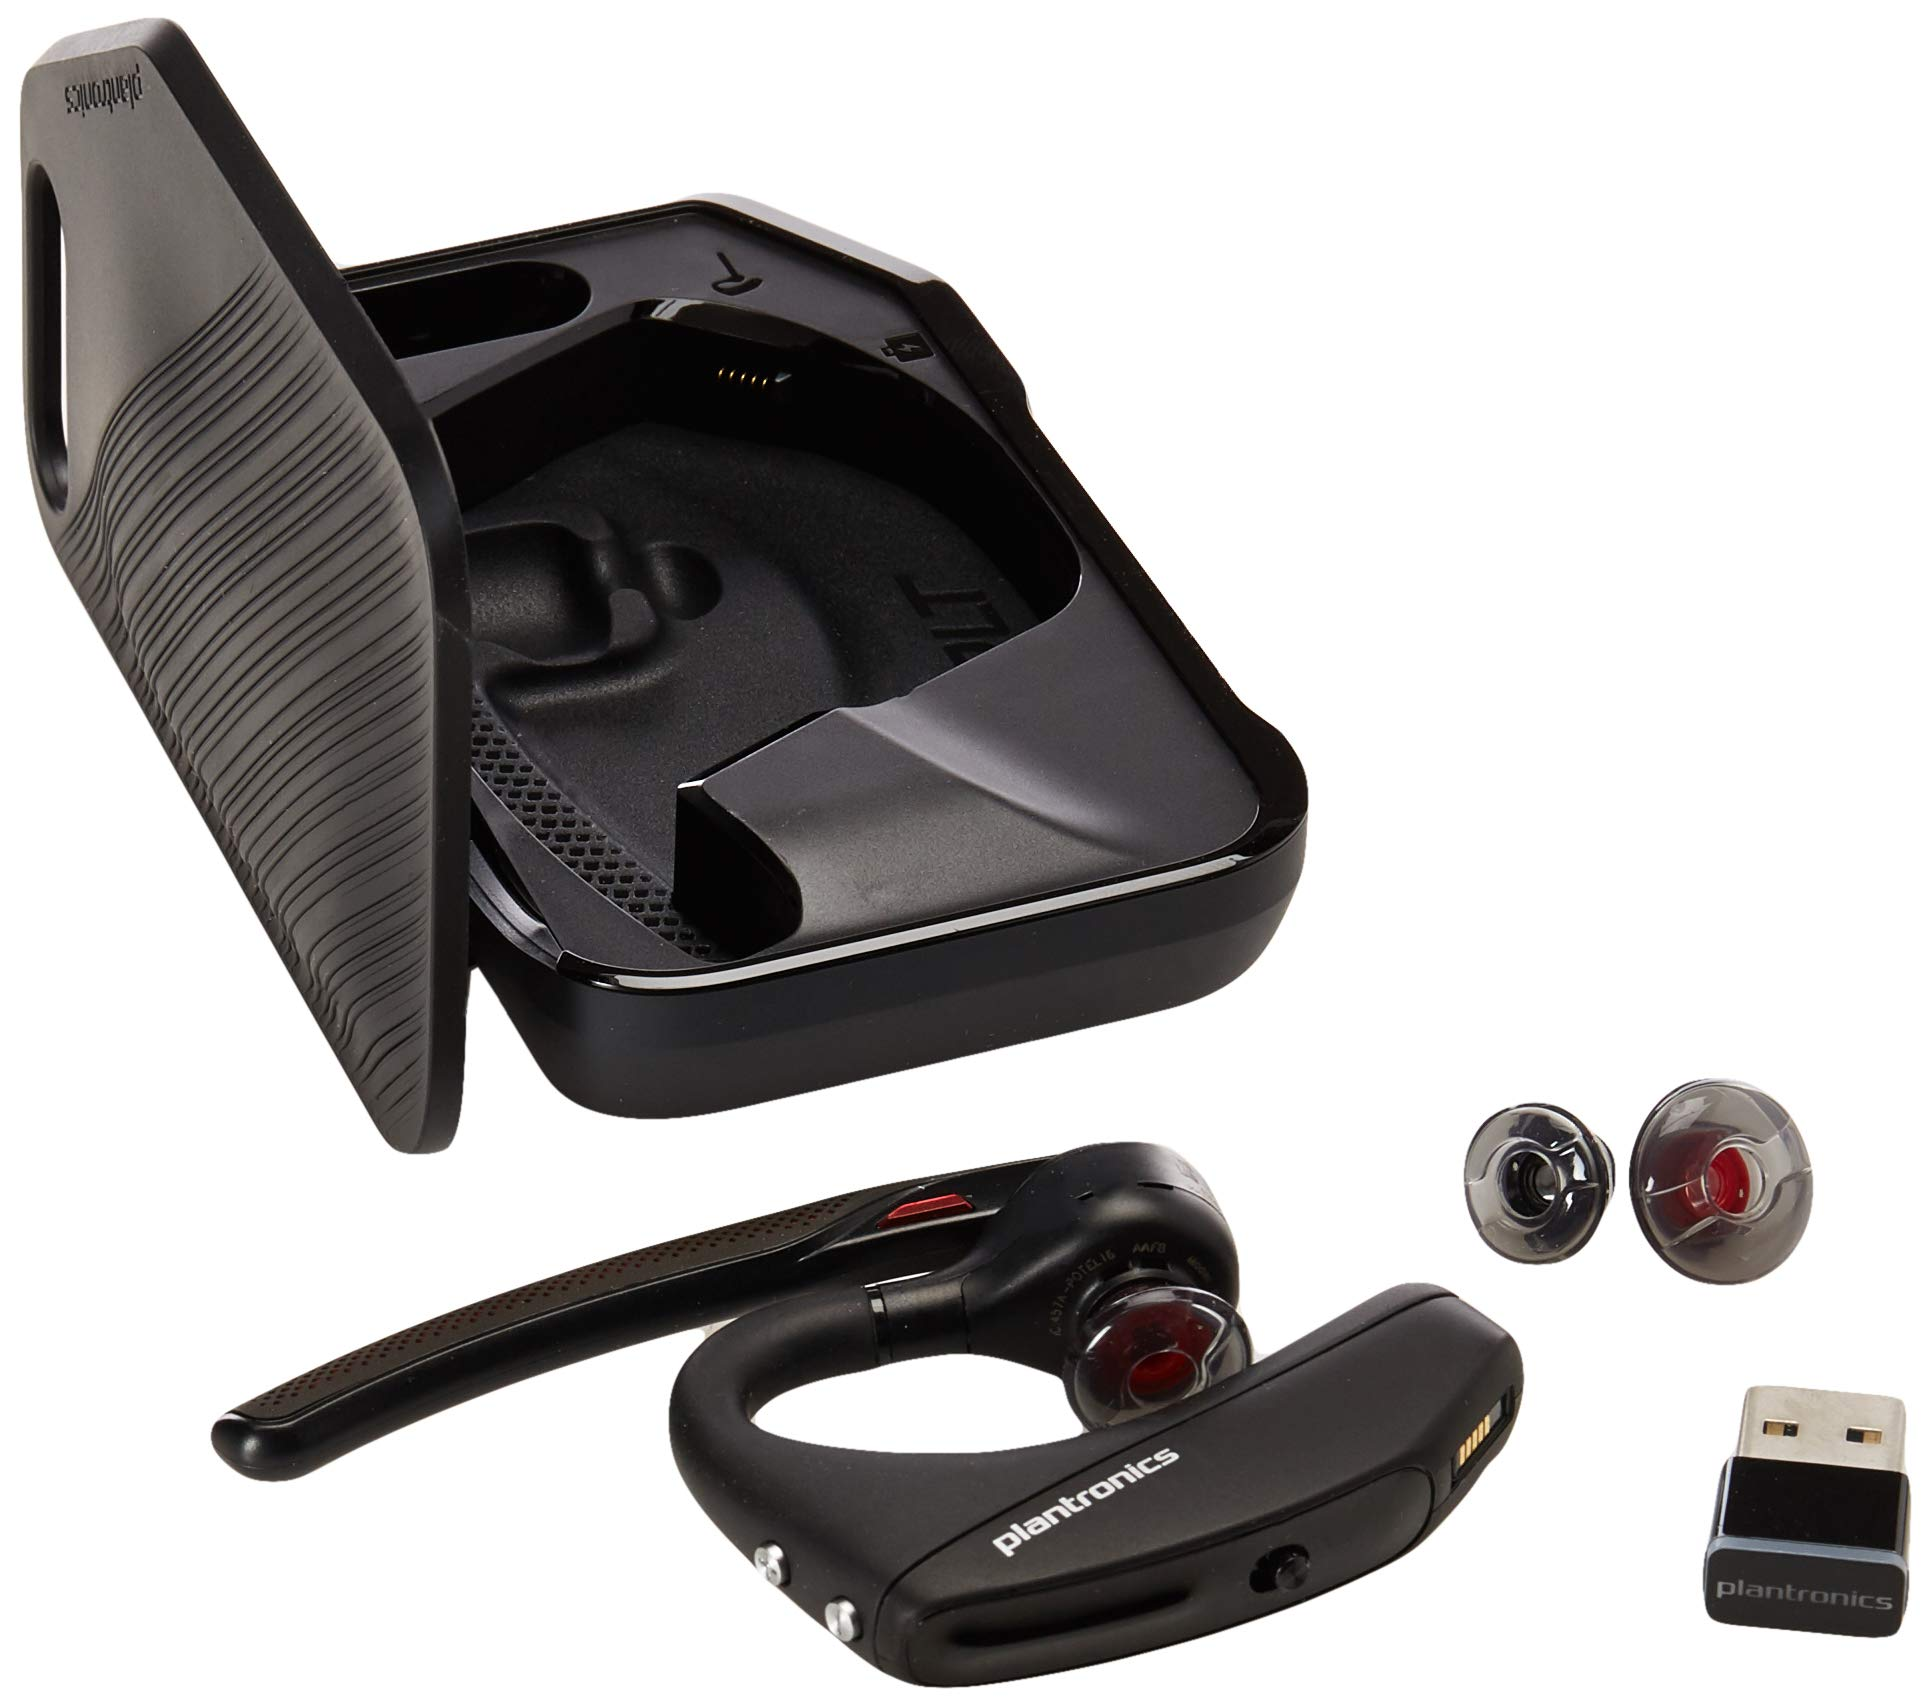 Plantronics VOYAGER-5200-UC (206110-01) Advanced NC Bluetooth Headsets System by Plantronics